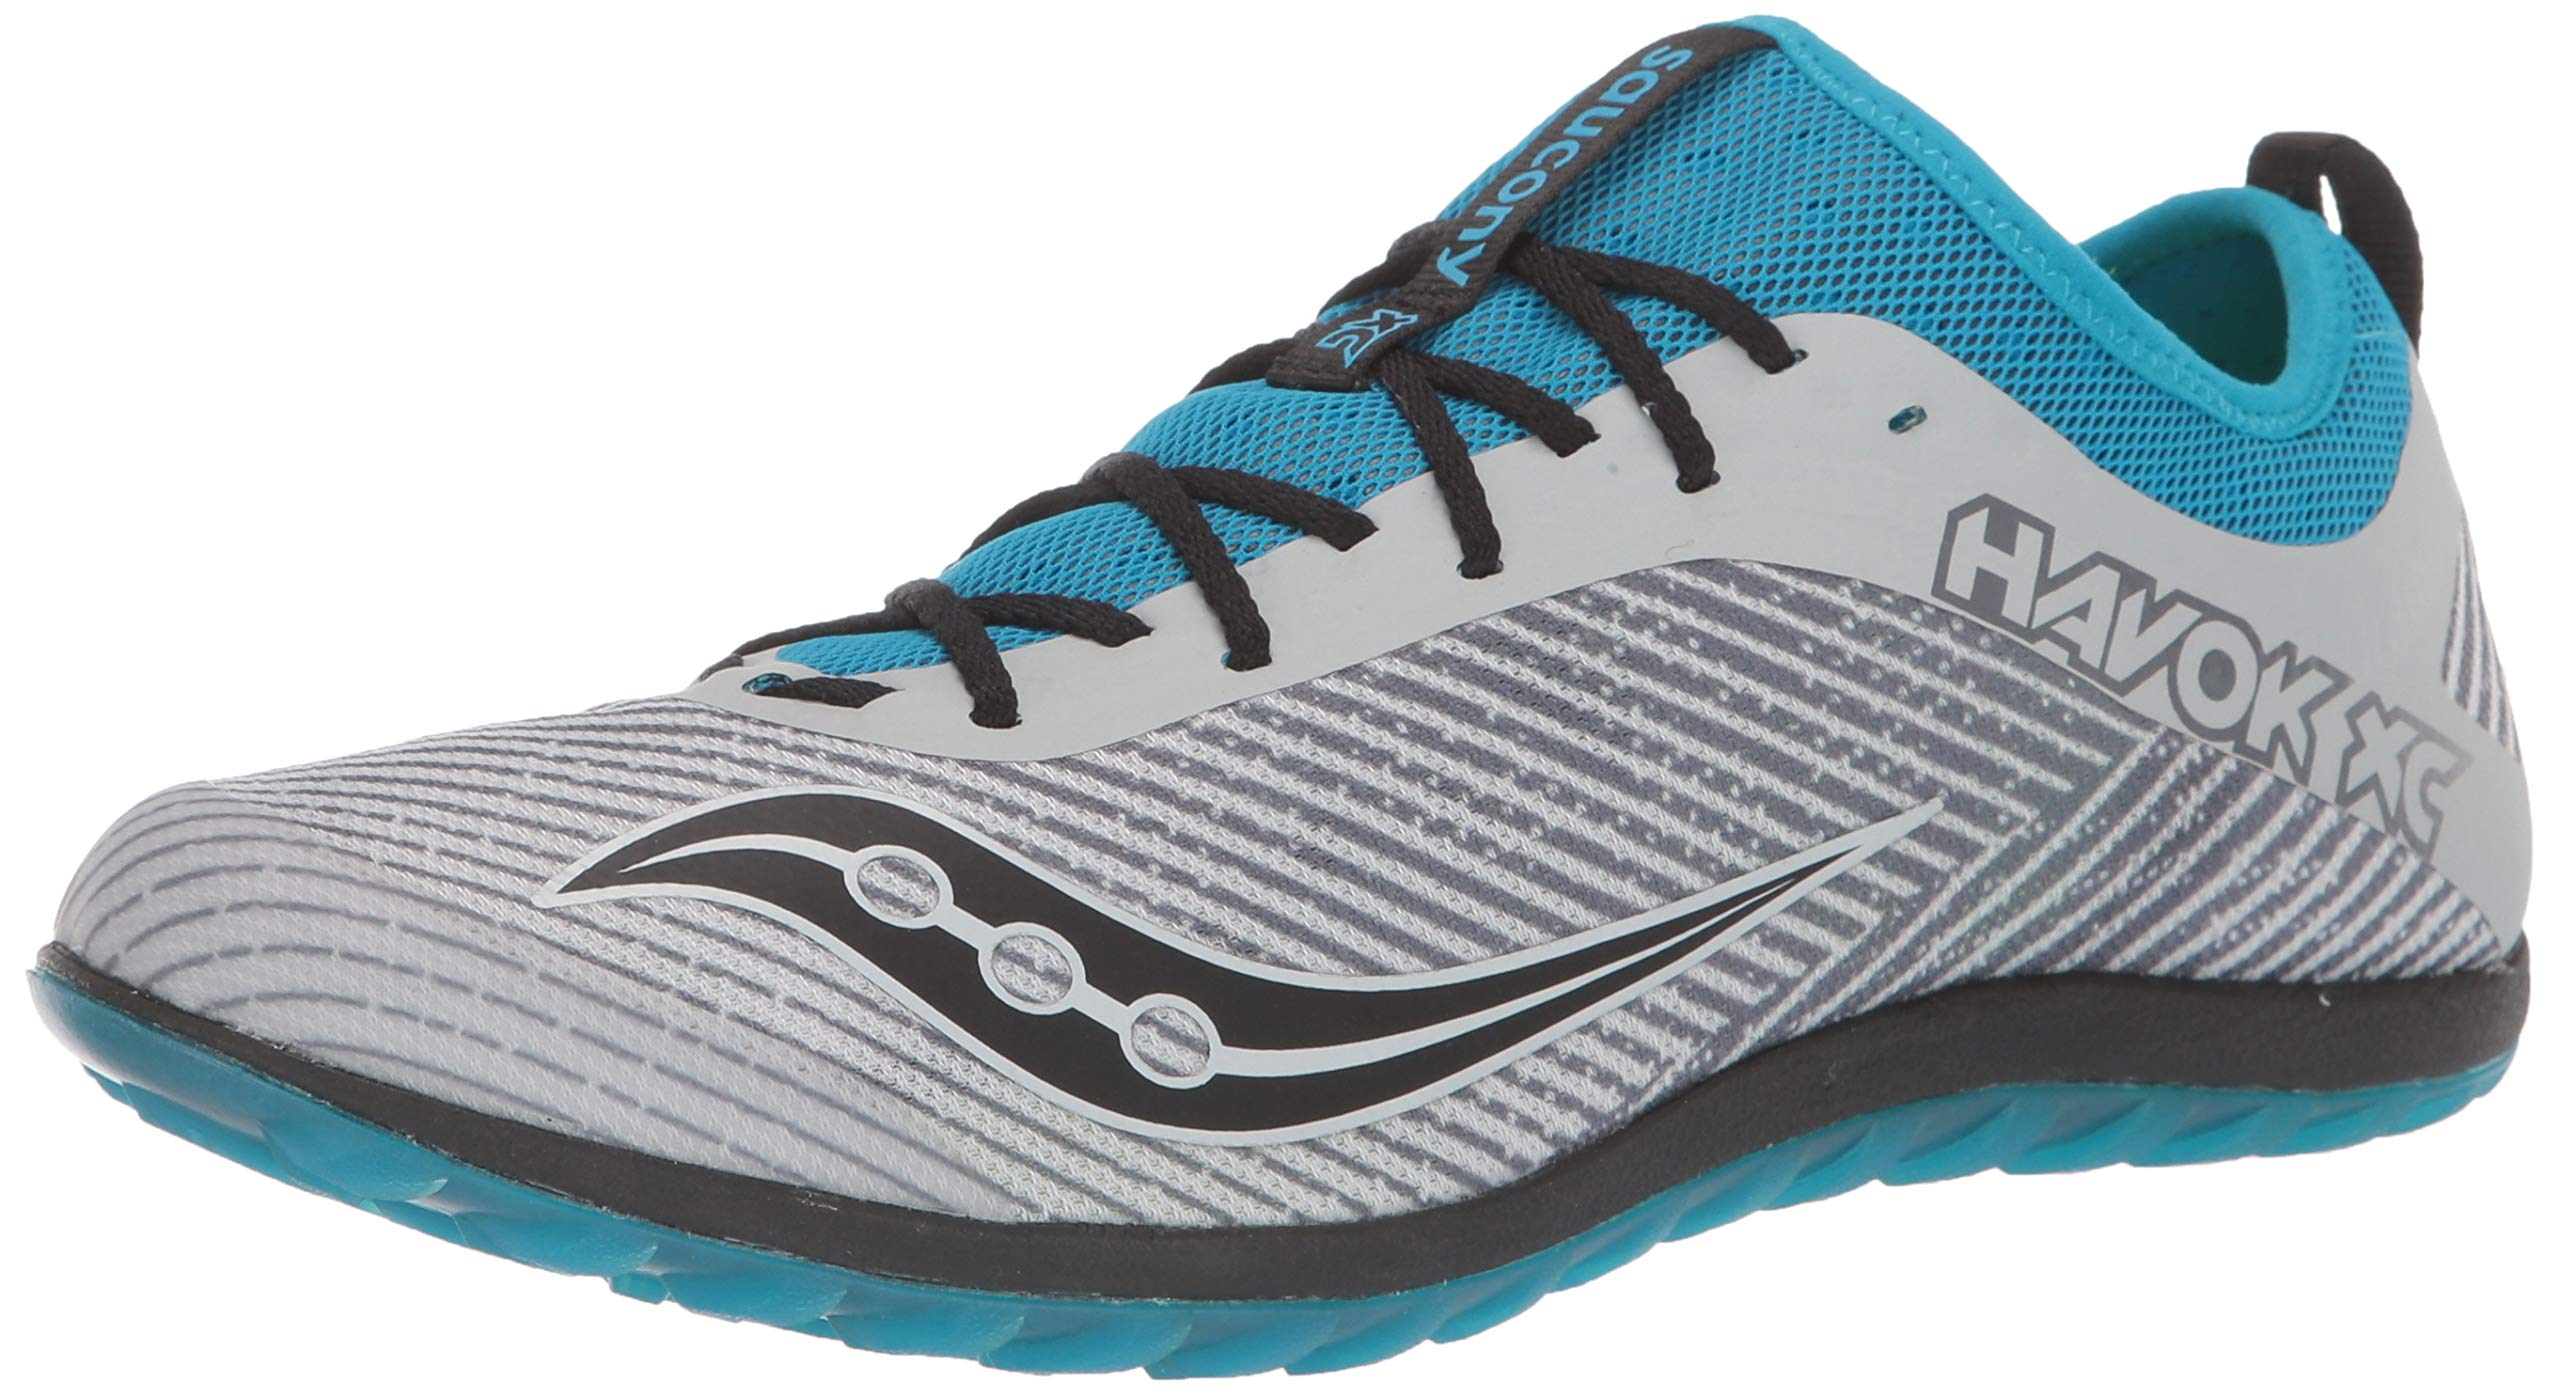 Saucony Men's Havok XC2 Flat Track and Field Shoe, Grey/Blue, 10 Medium US by Saucony